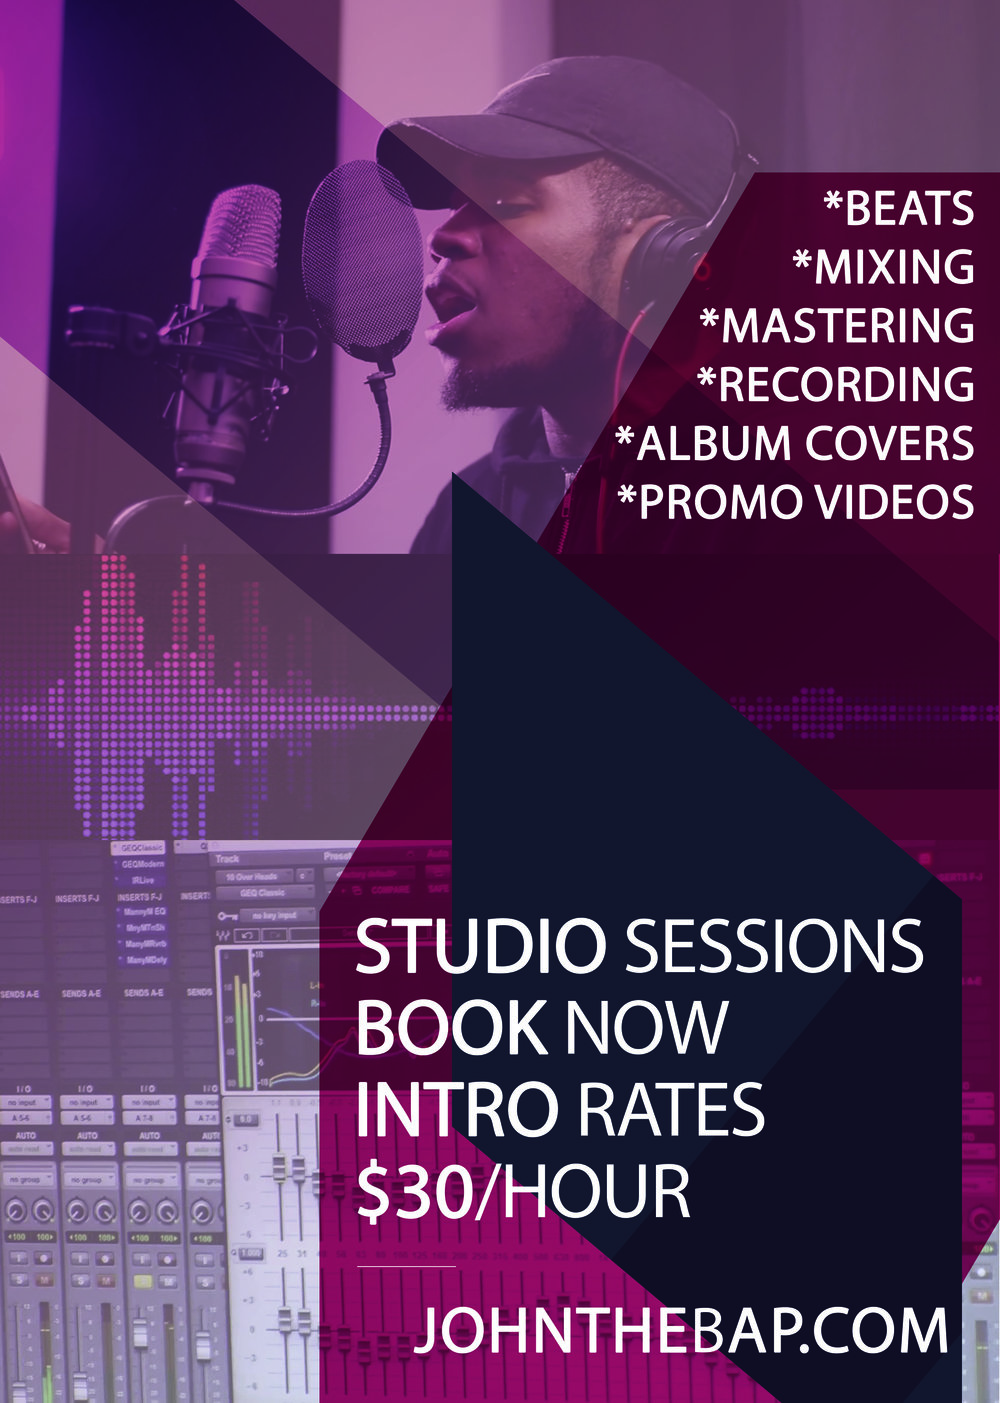 Studio Flyer 1 Intro Rates Coming Soon.jpg